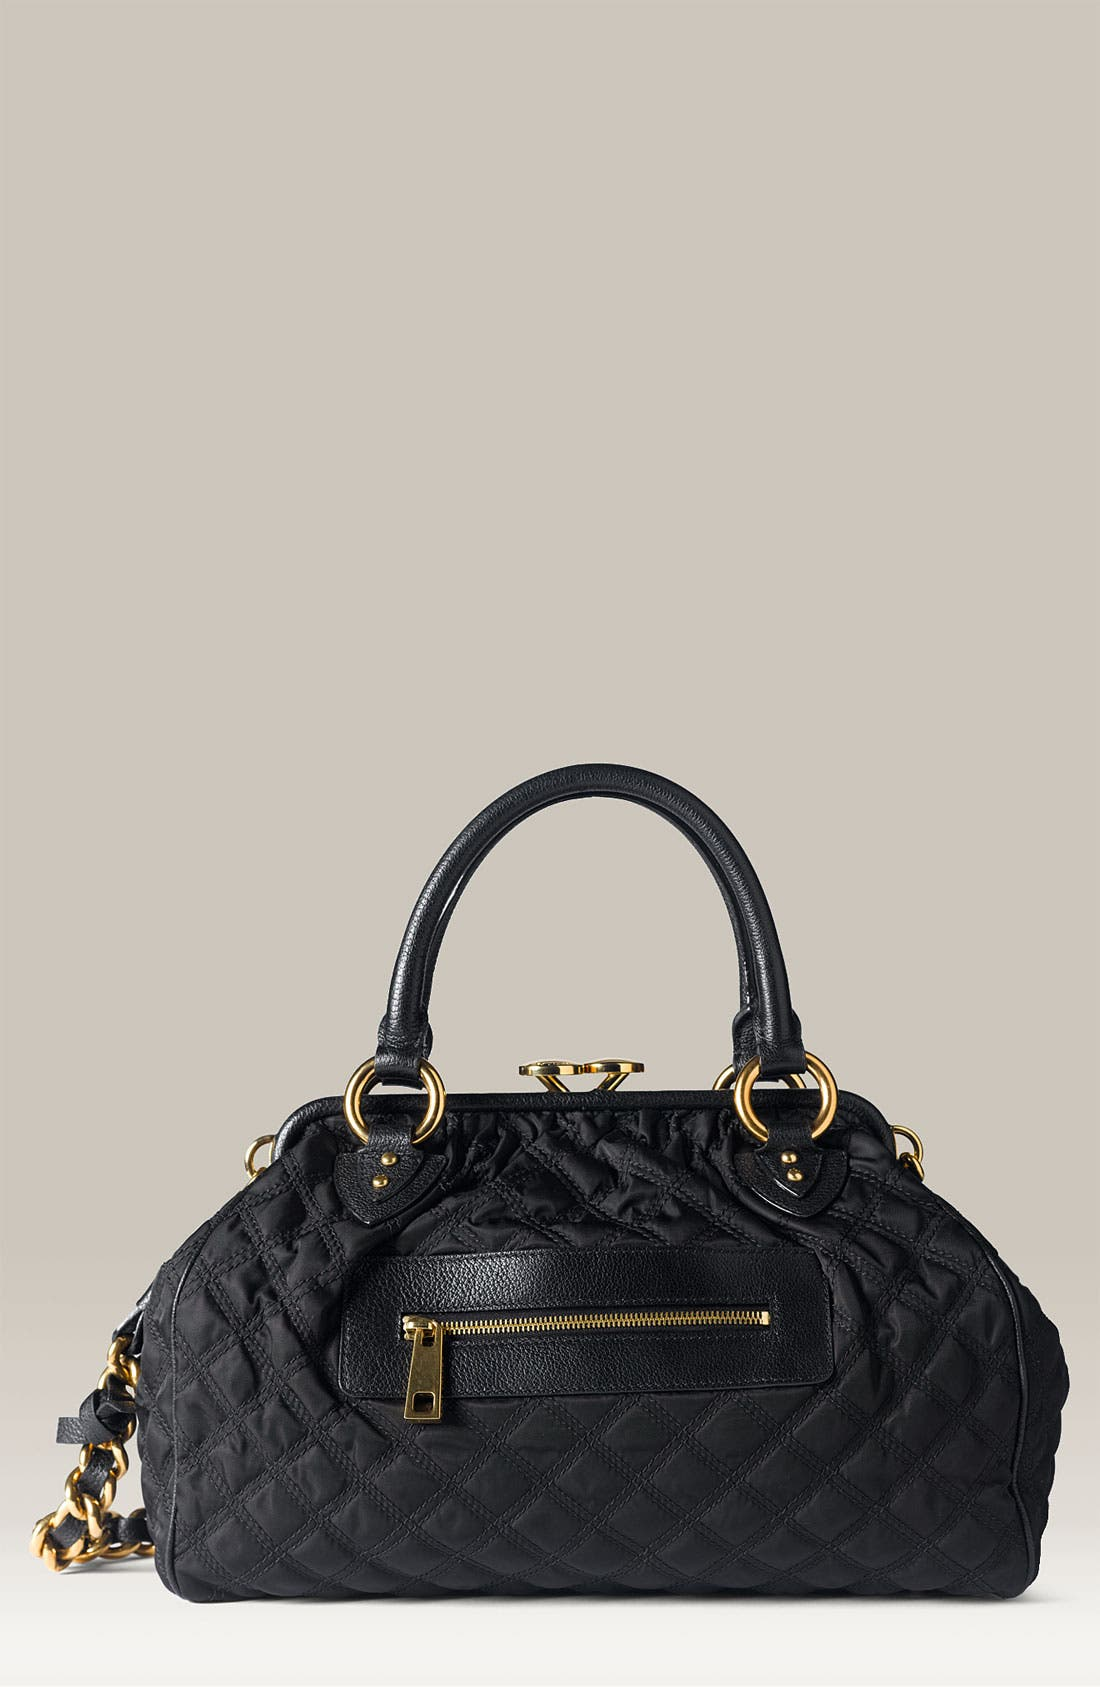 Alternate Image 1 Selected - MARC JACOBS 'Stam' Quilted Nylon Satchel